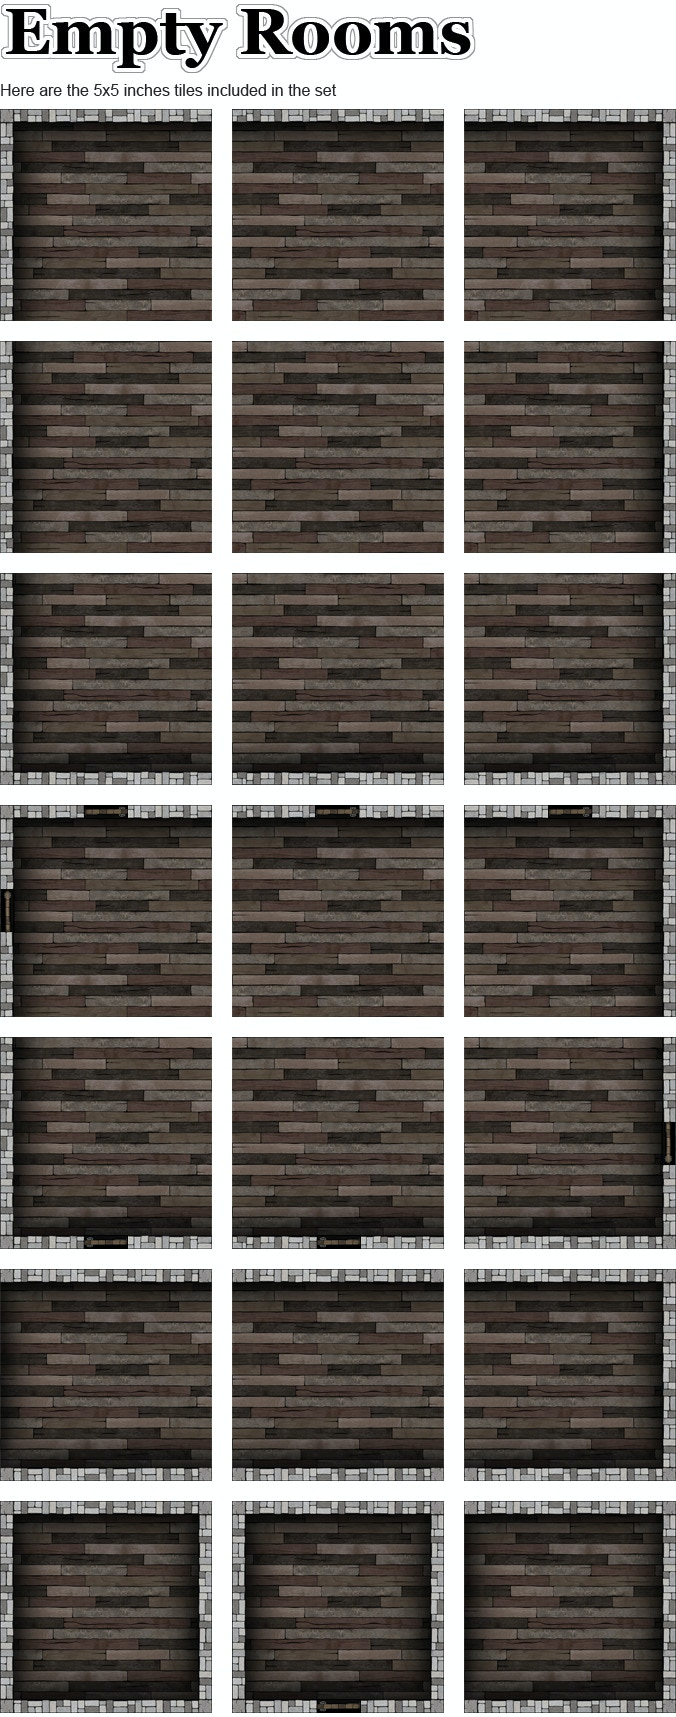 Here are the tiles included in the Empty Rooms Set